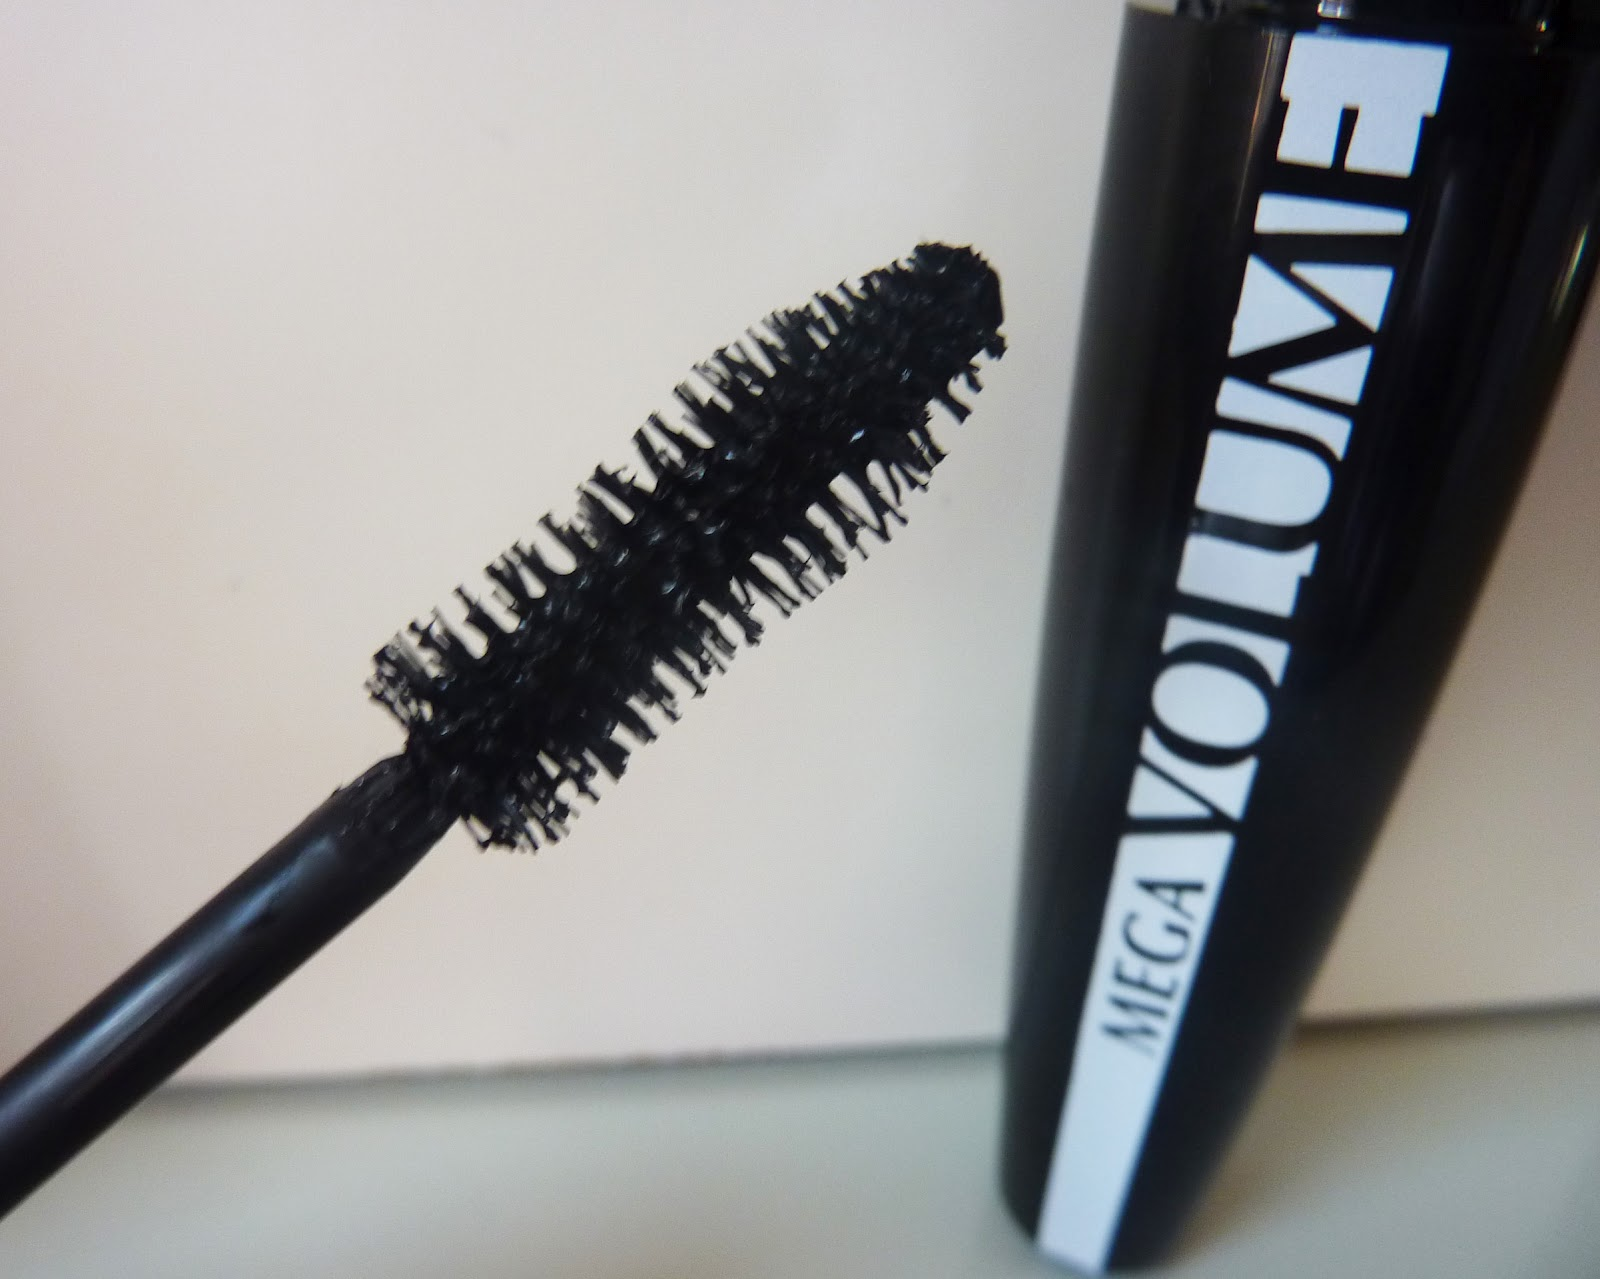 9a898018404 ... sure about its thickening credentials, it doesn't separate and create  the illusion of more lashes, like my beloved They're Real. There is some  volume, ...